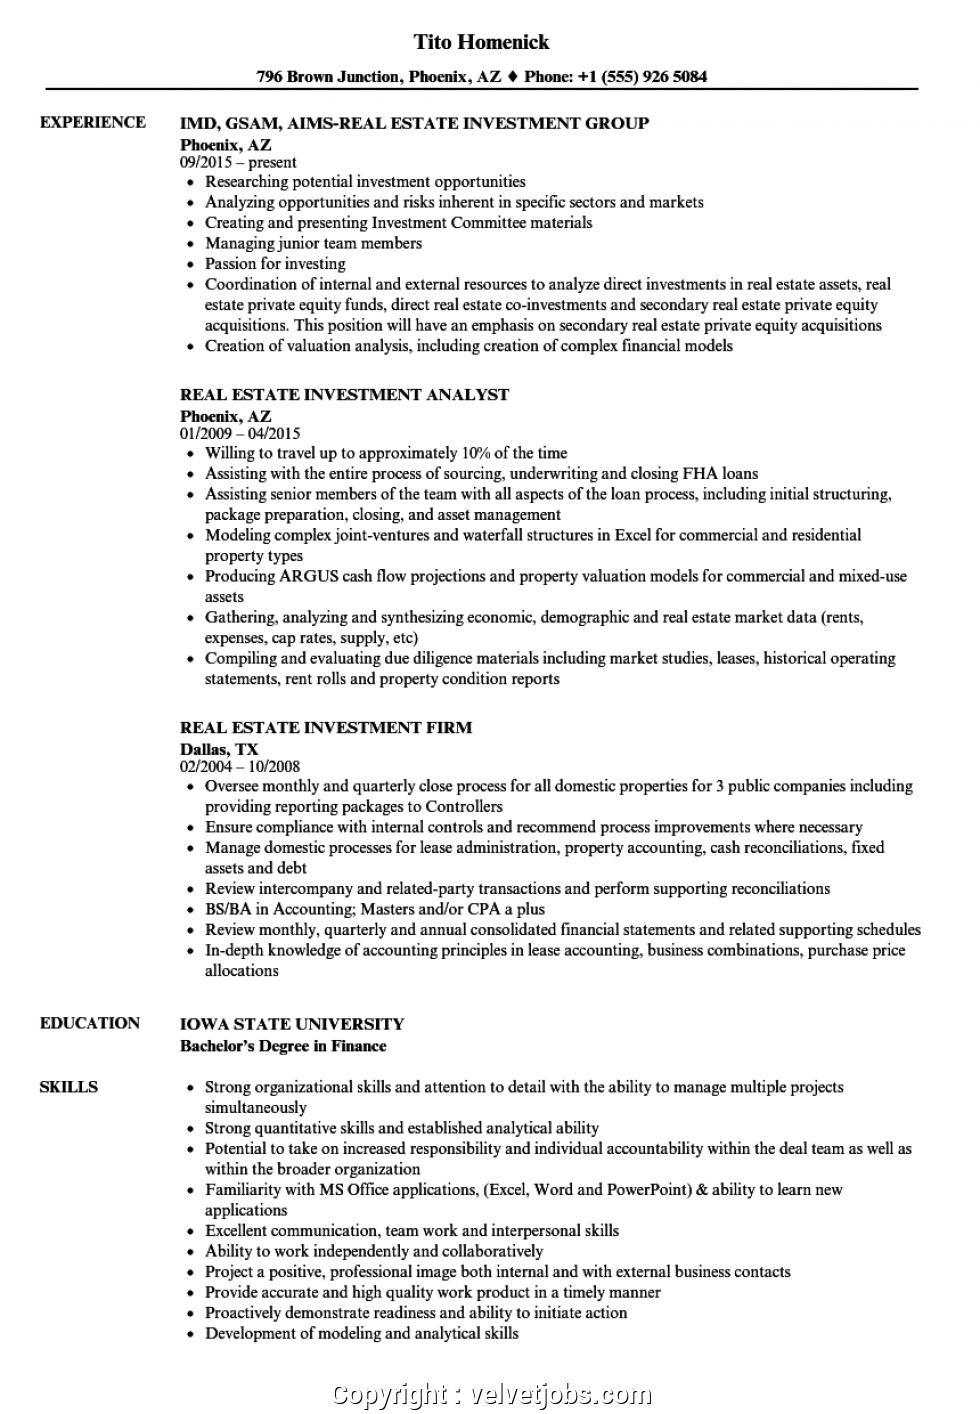 Real Estate Investor Resume Samples